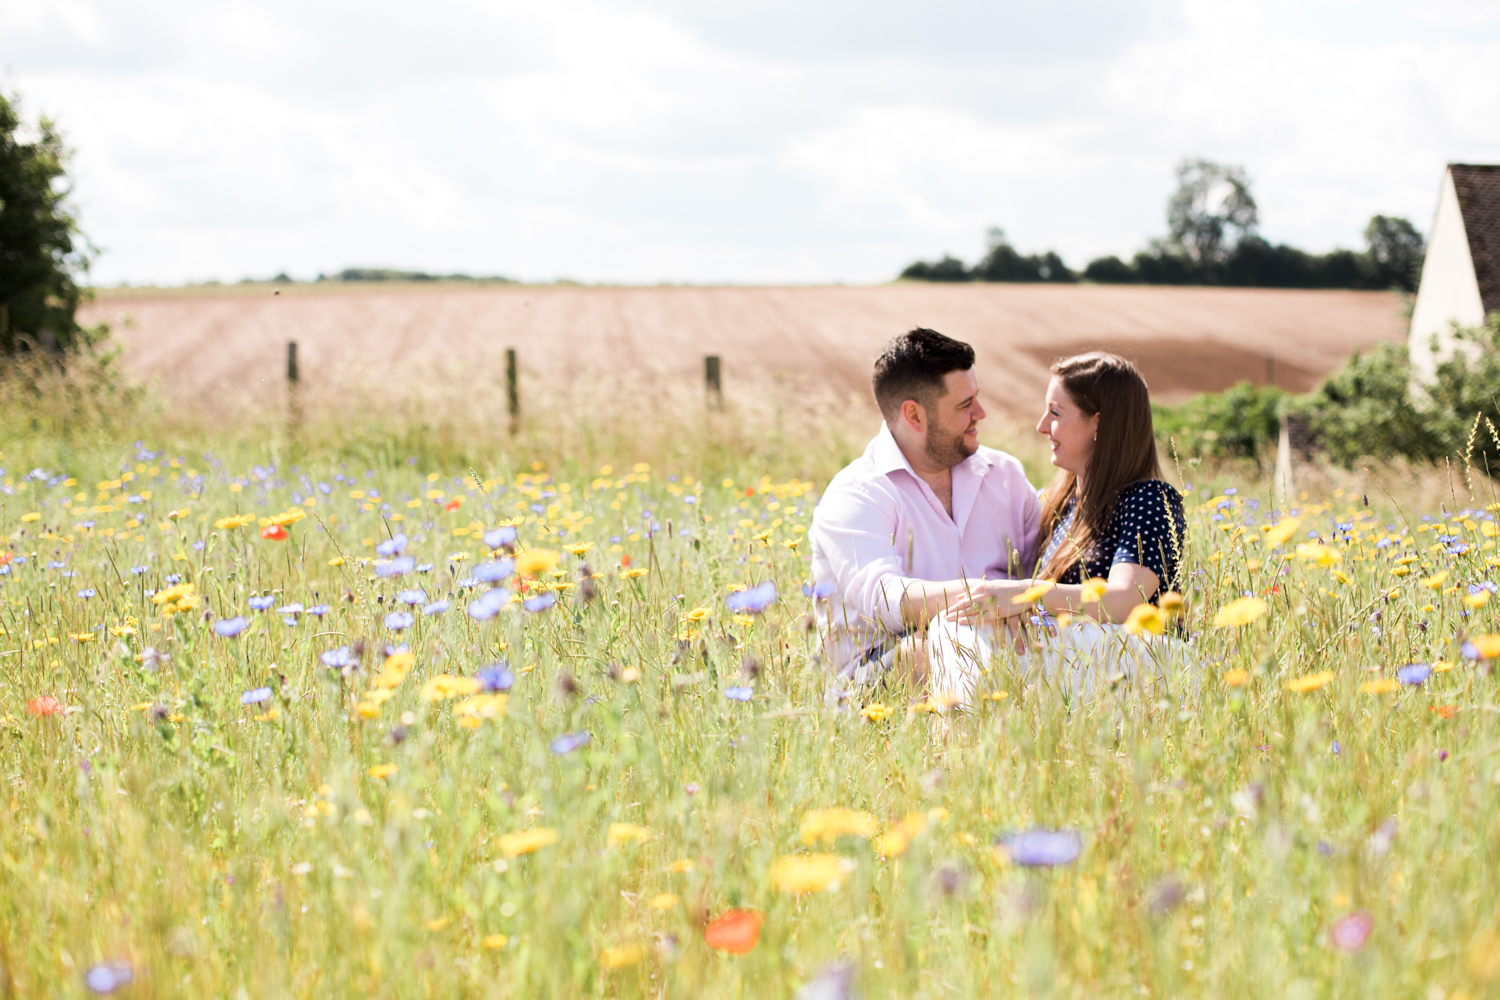 Sophie-Evans-Photograpy-Cotswold-Lavander-Engagement-shoot-Cotswold-wedding-photographer-23.jpg